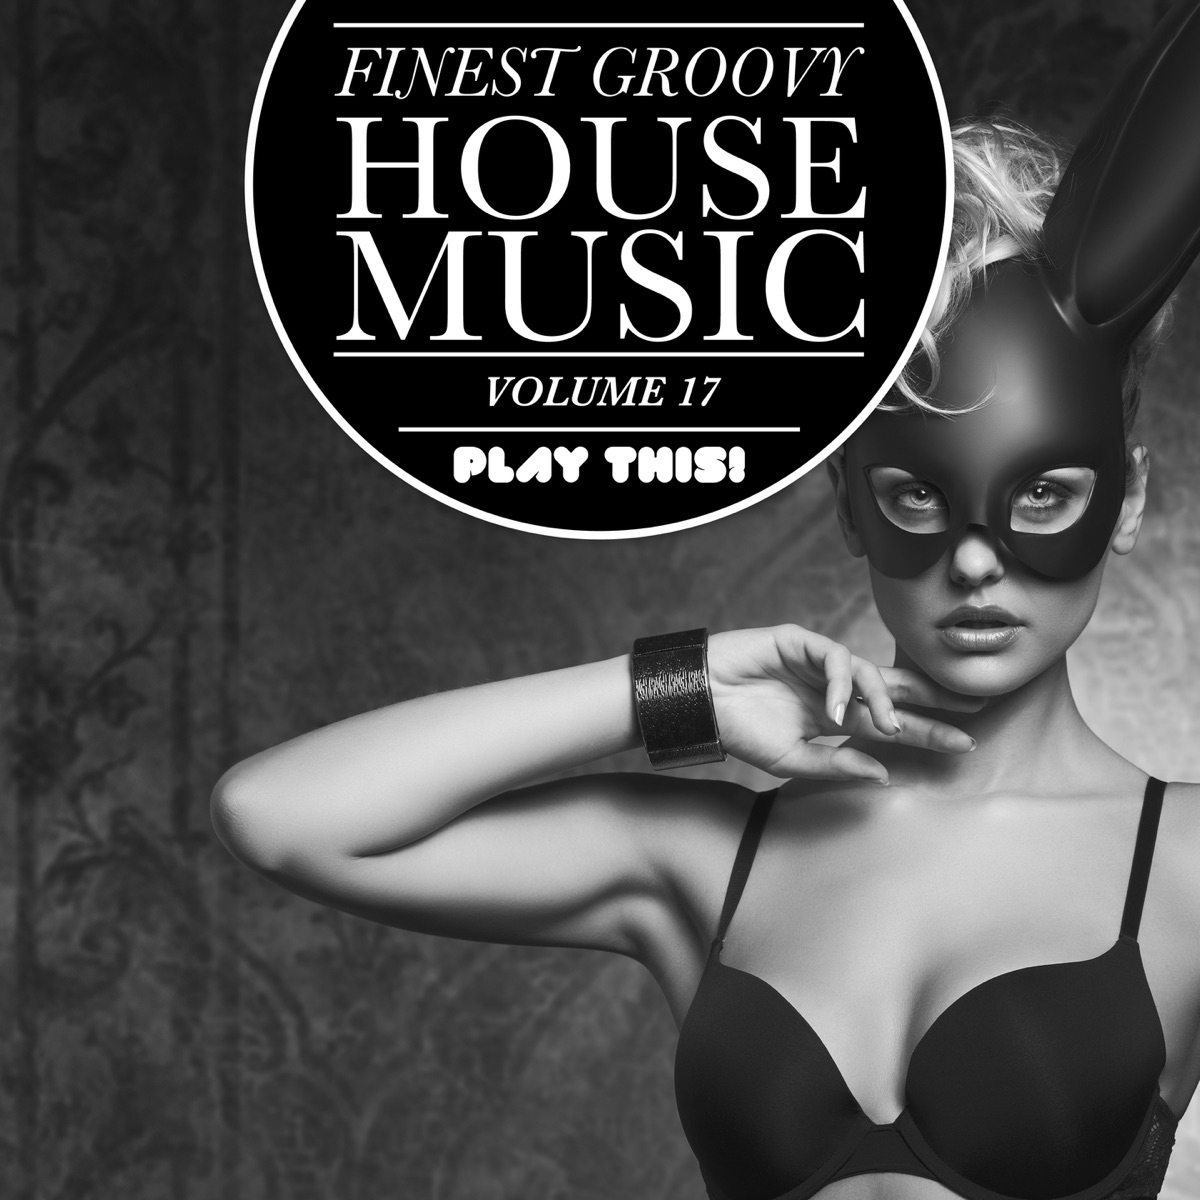 Finest groovy house music vol 17 album cover by various for House music cover